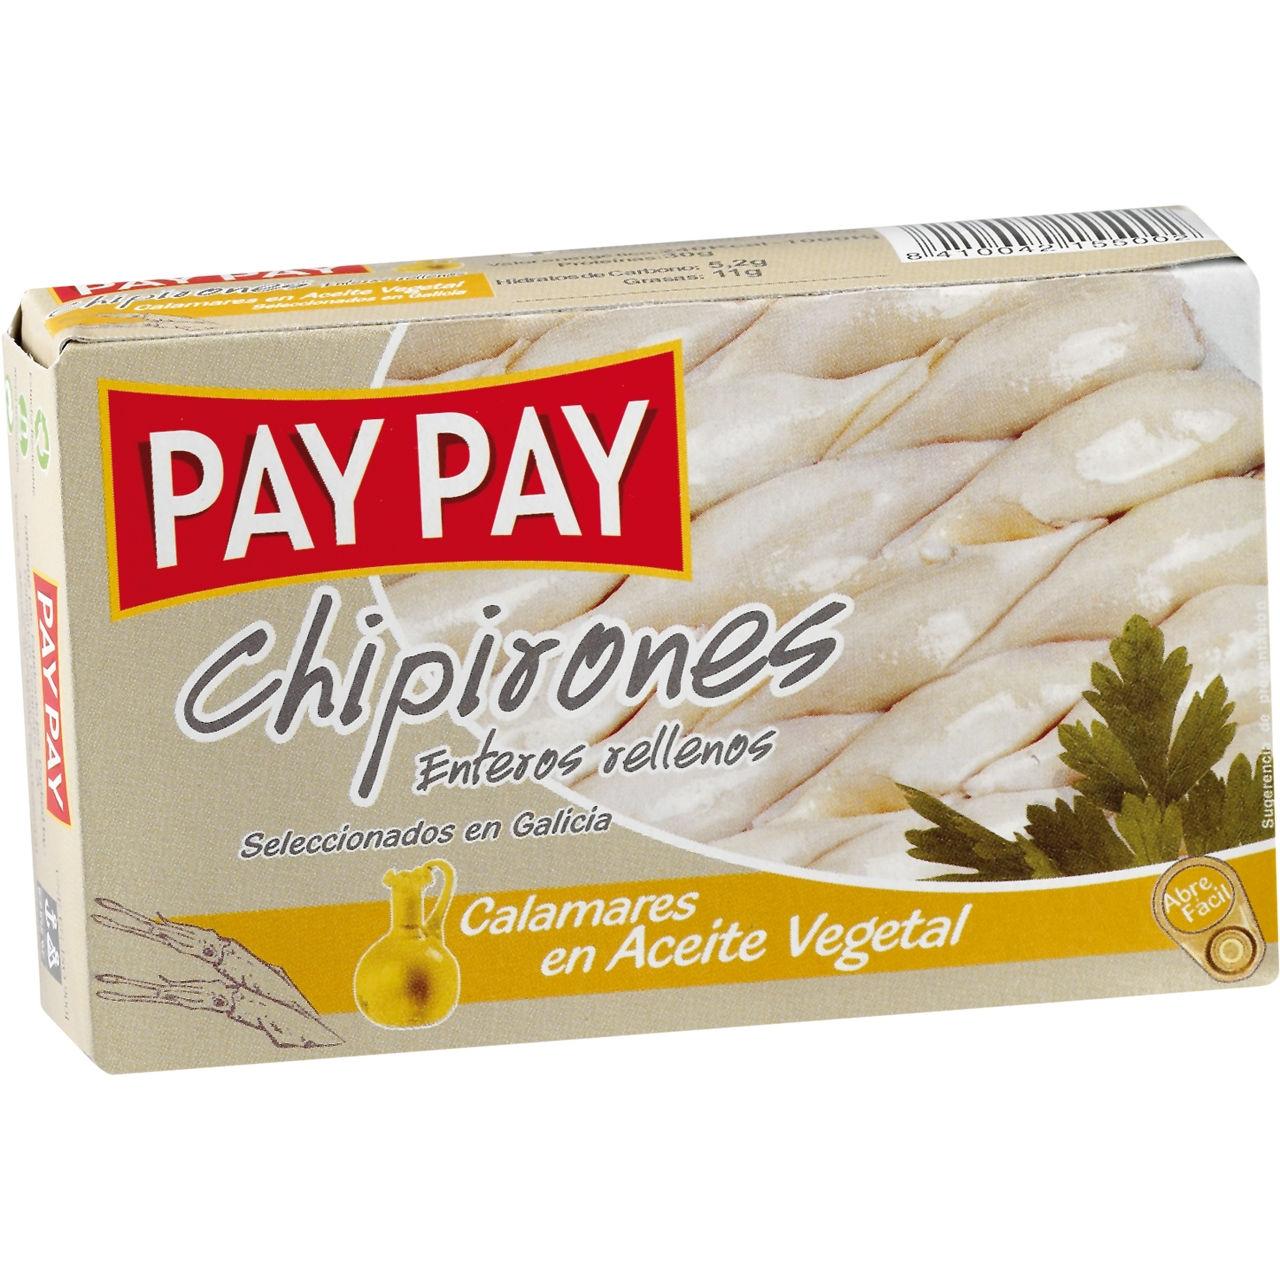 Chipirones en aceite vegetal OL 120 F.O. Pay Pay